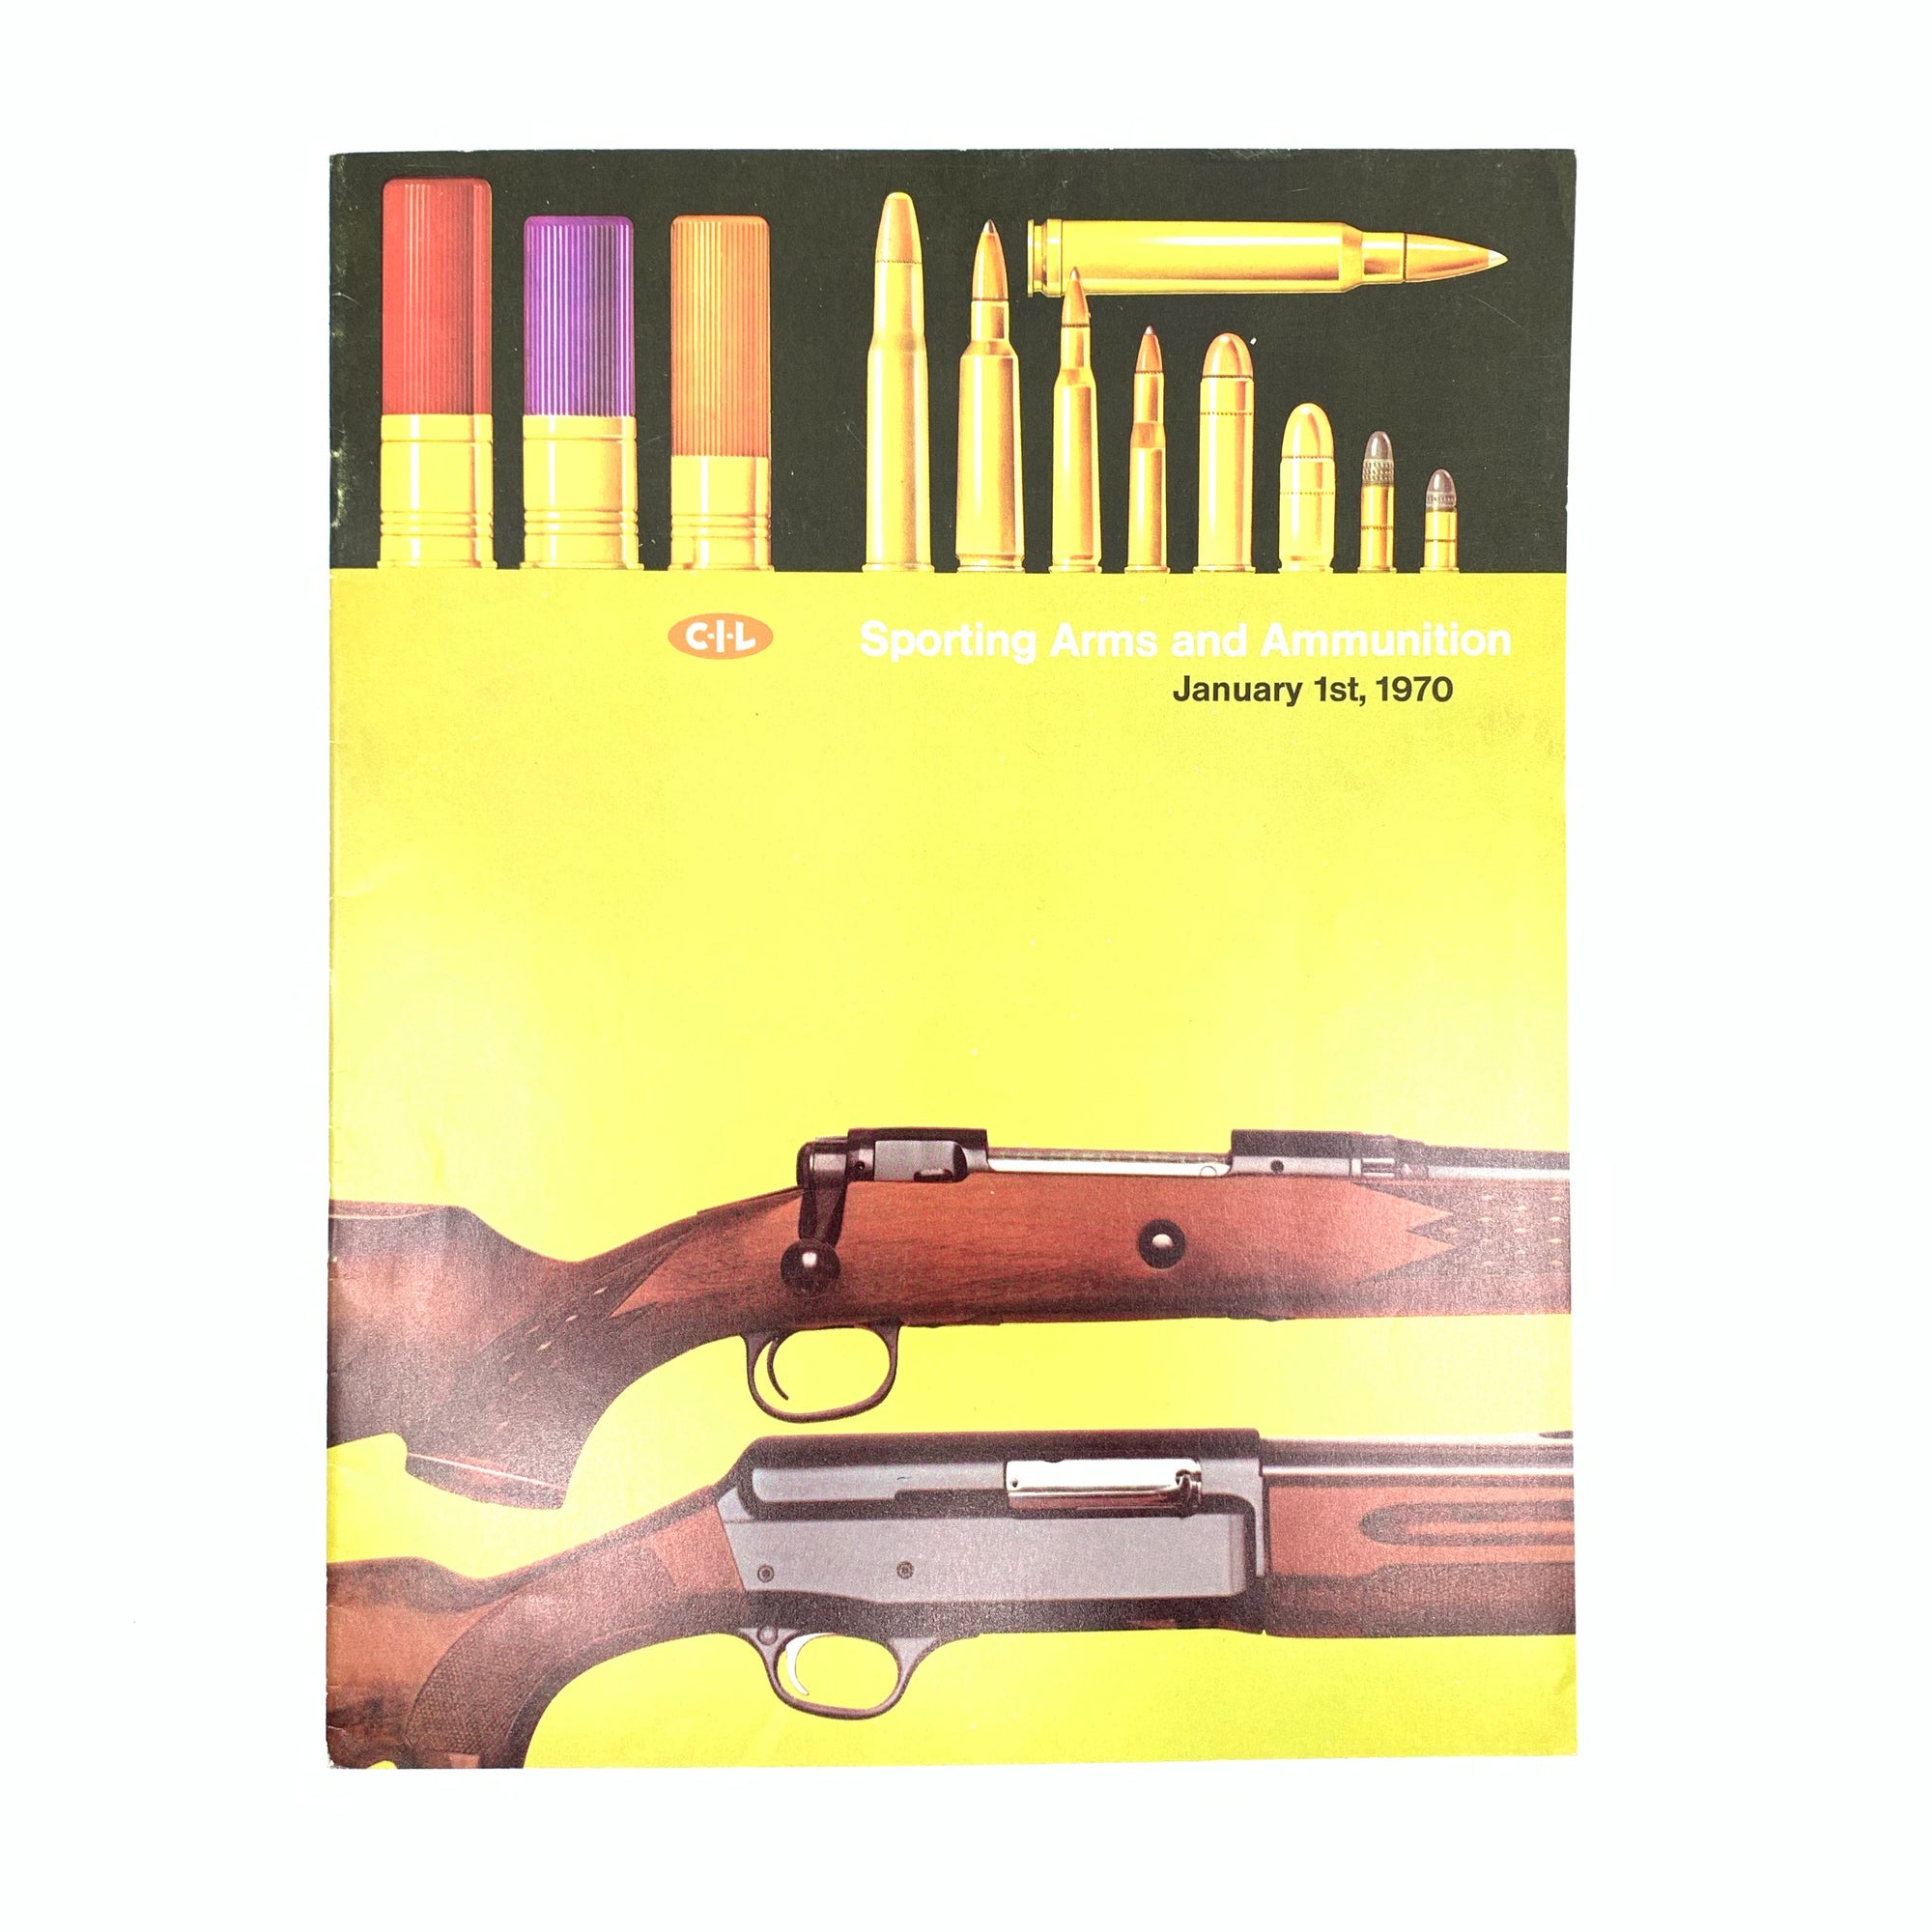 CIL Ammunition and Firearms 1970 SB 18 pages